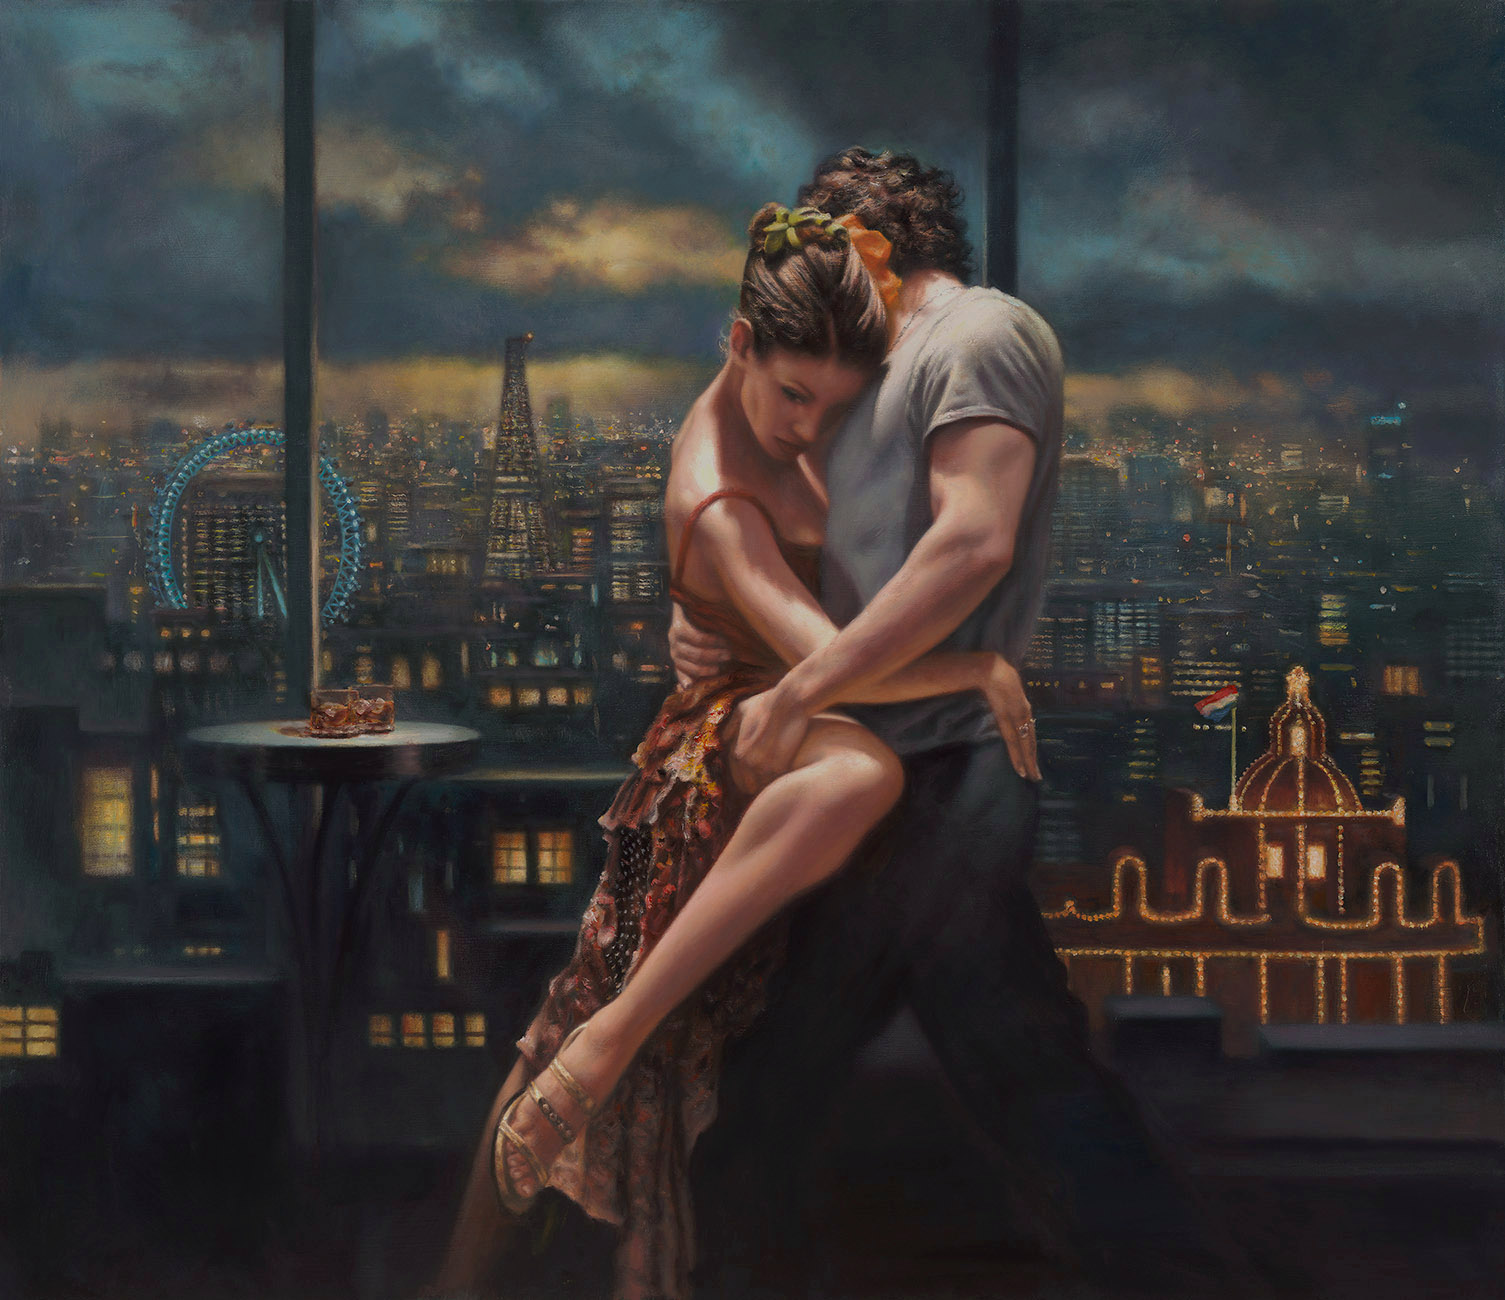 The World Stands Still by Hamish Blakely